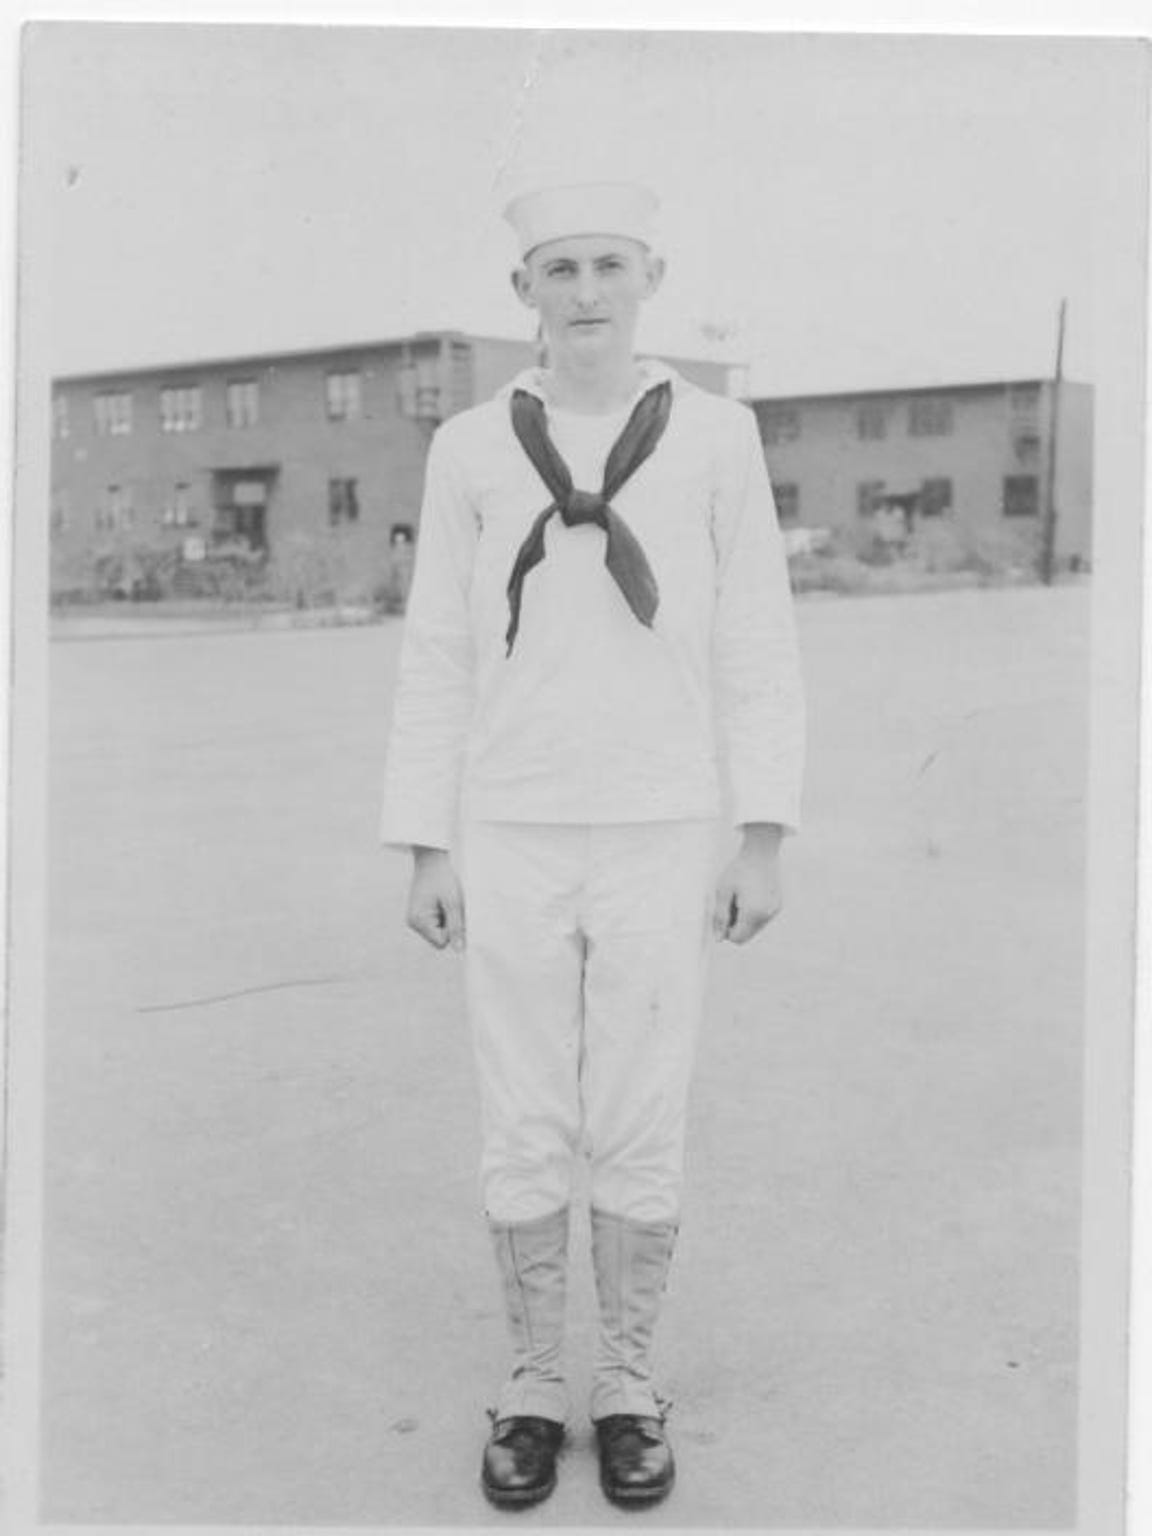 Albert Merkley shortly after he joined the Navy at